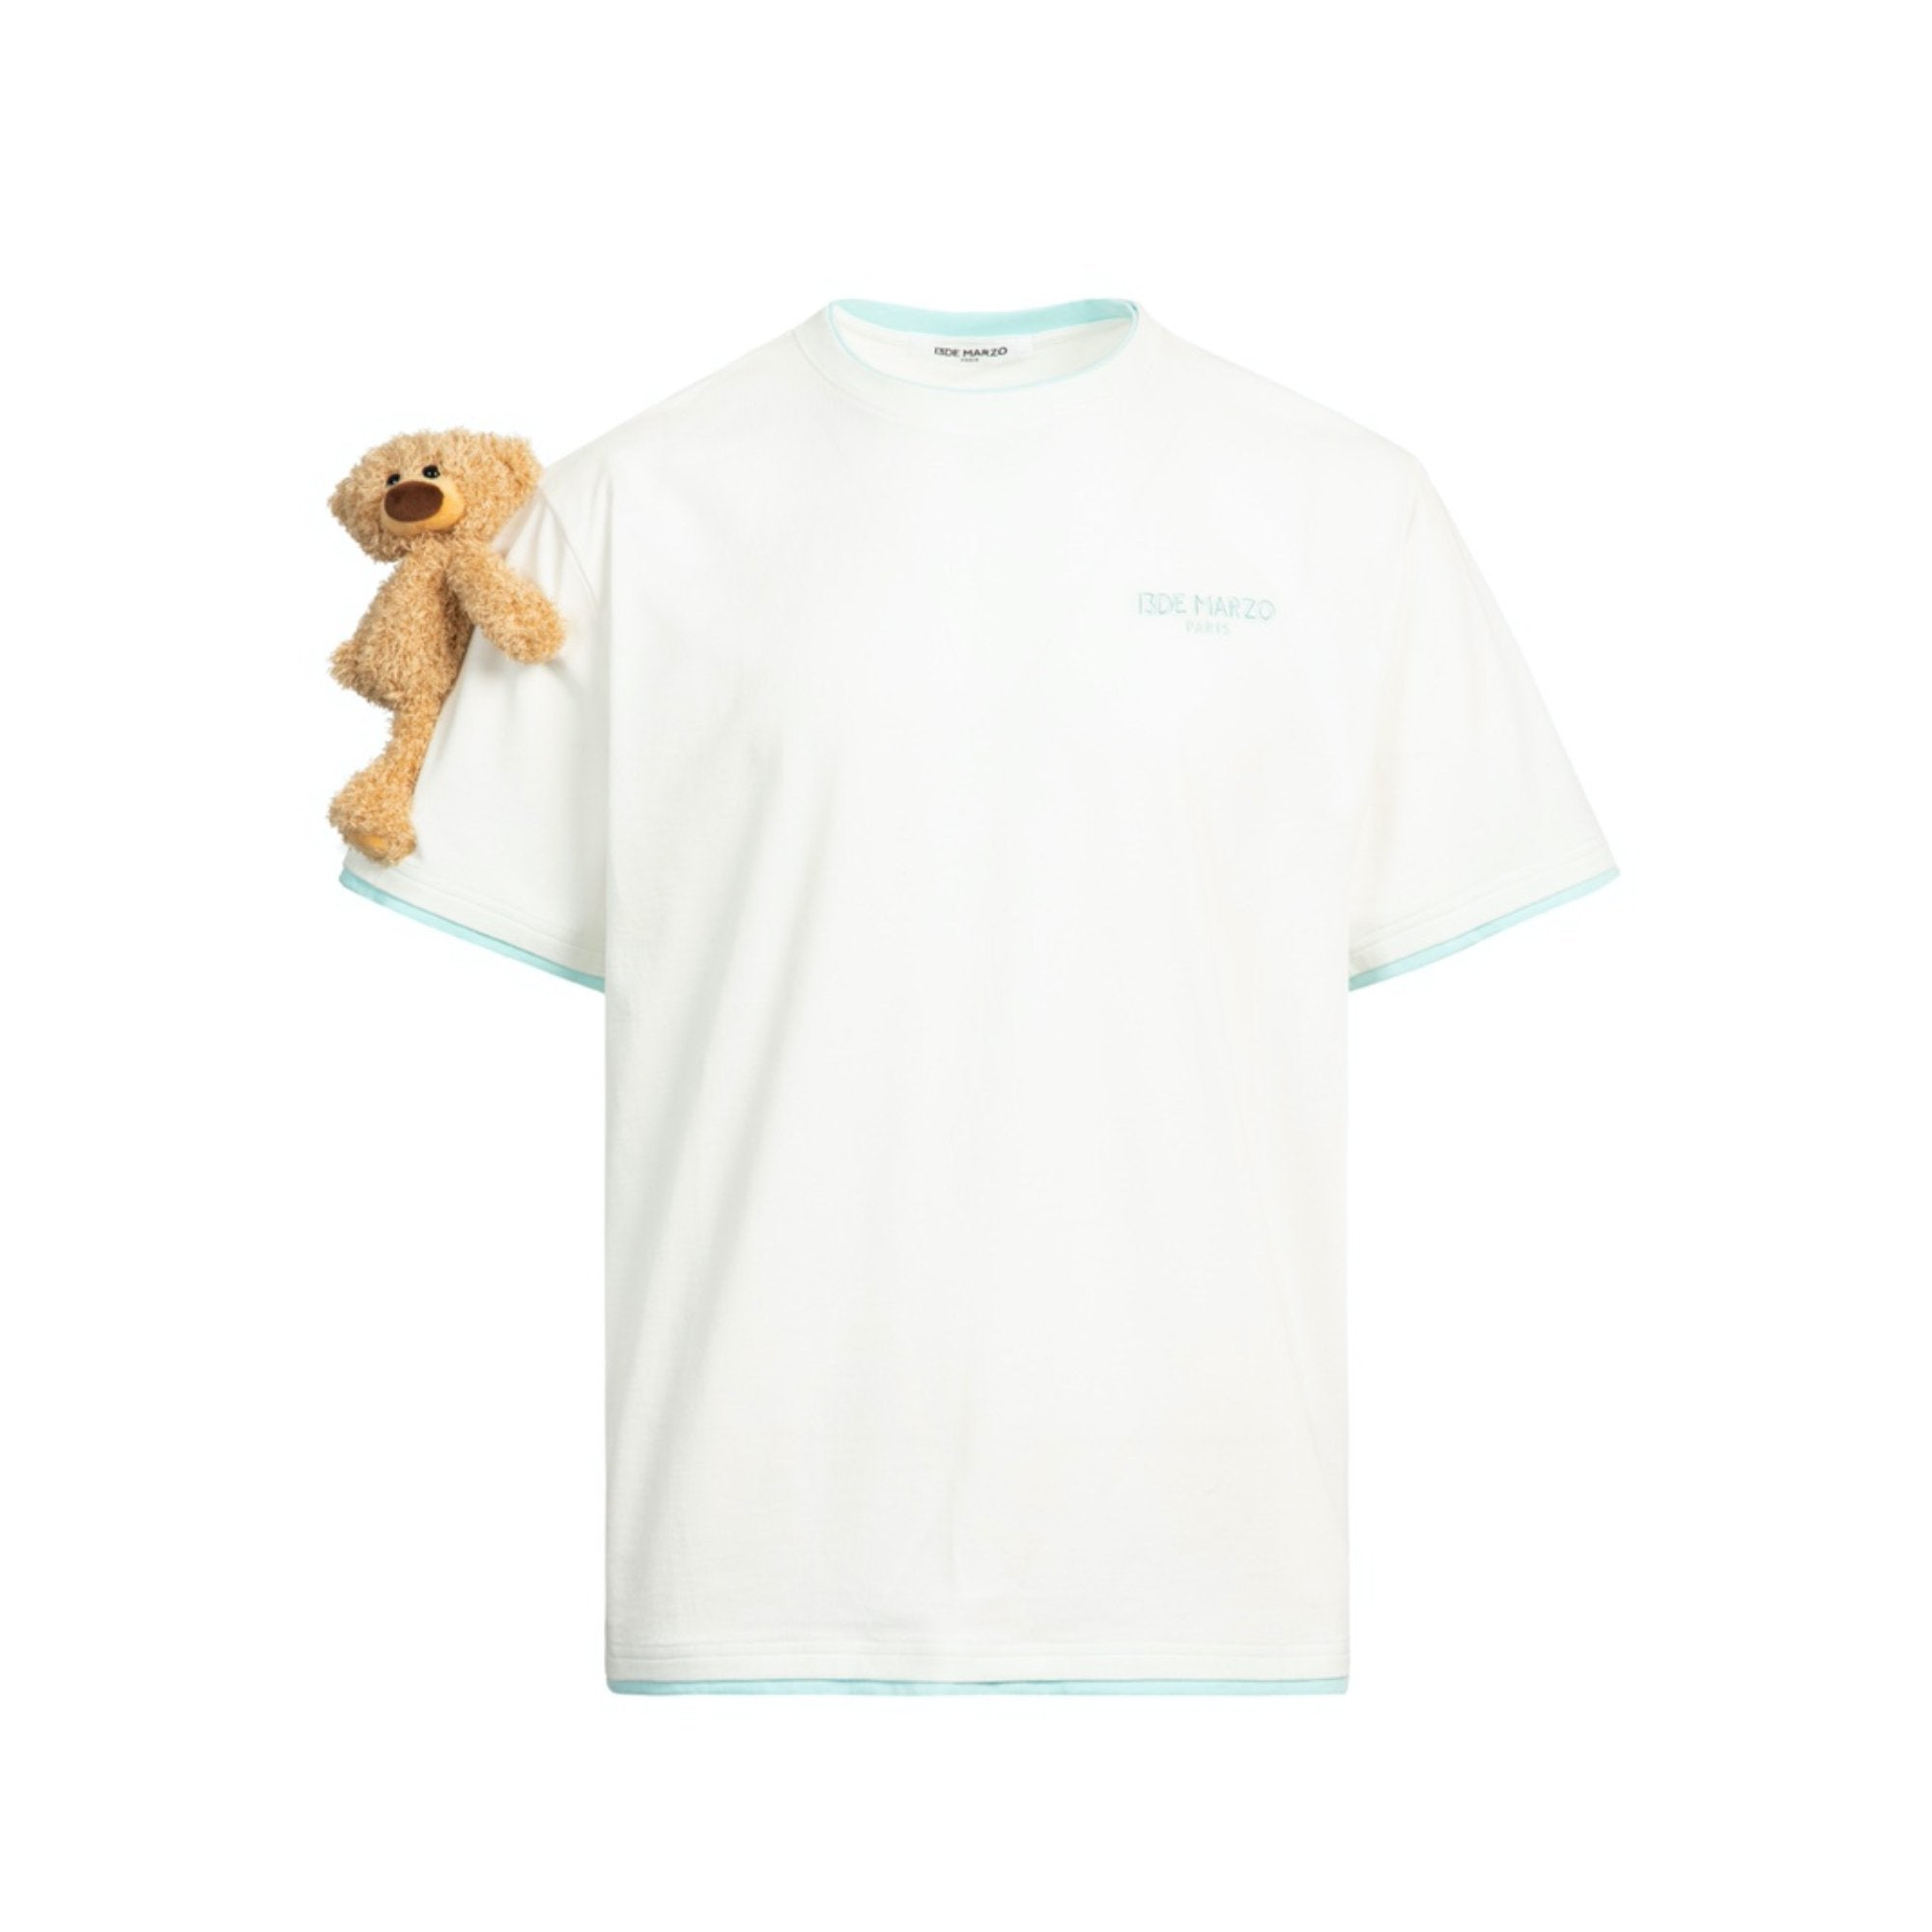 13 DE MARZO Short Sleeve Teddy Bear Tee White | MADA IN CHINA